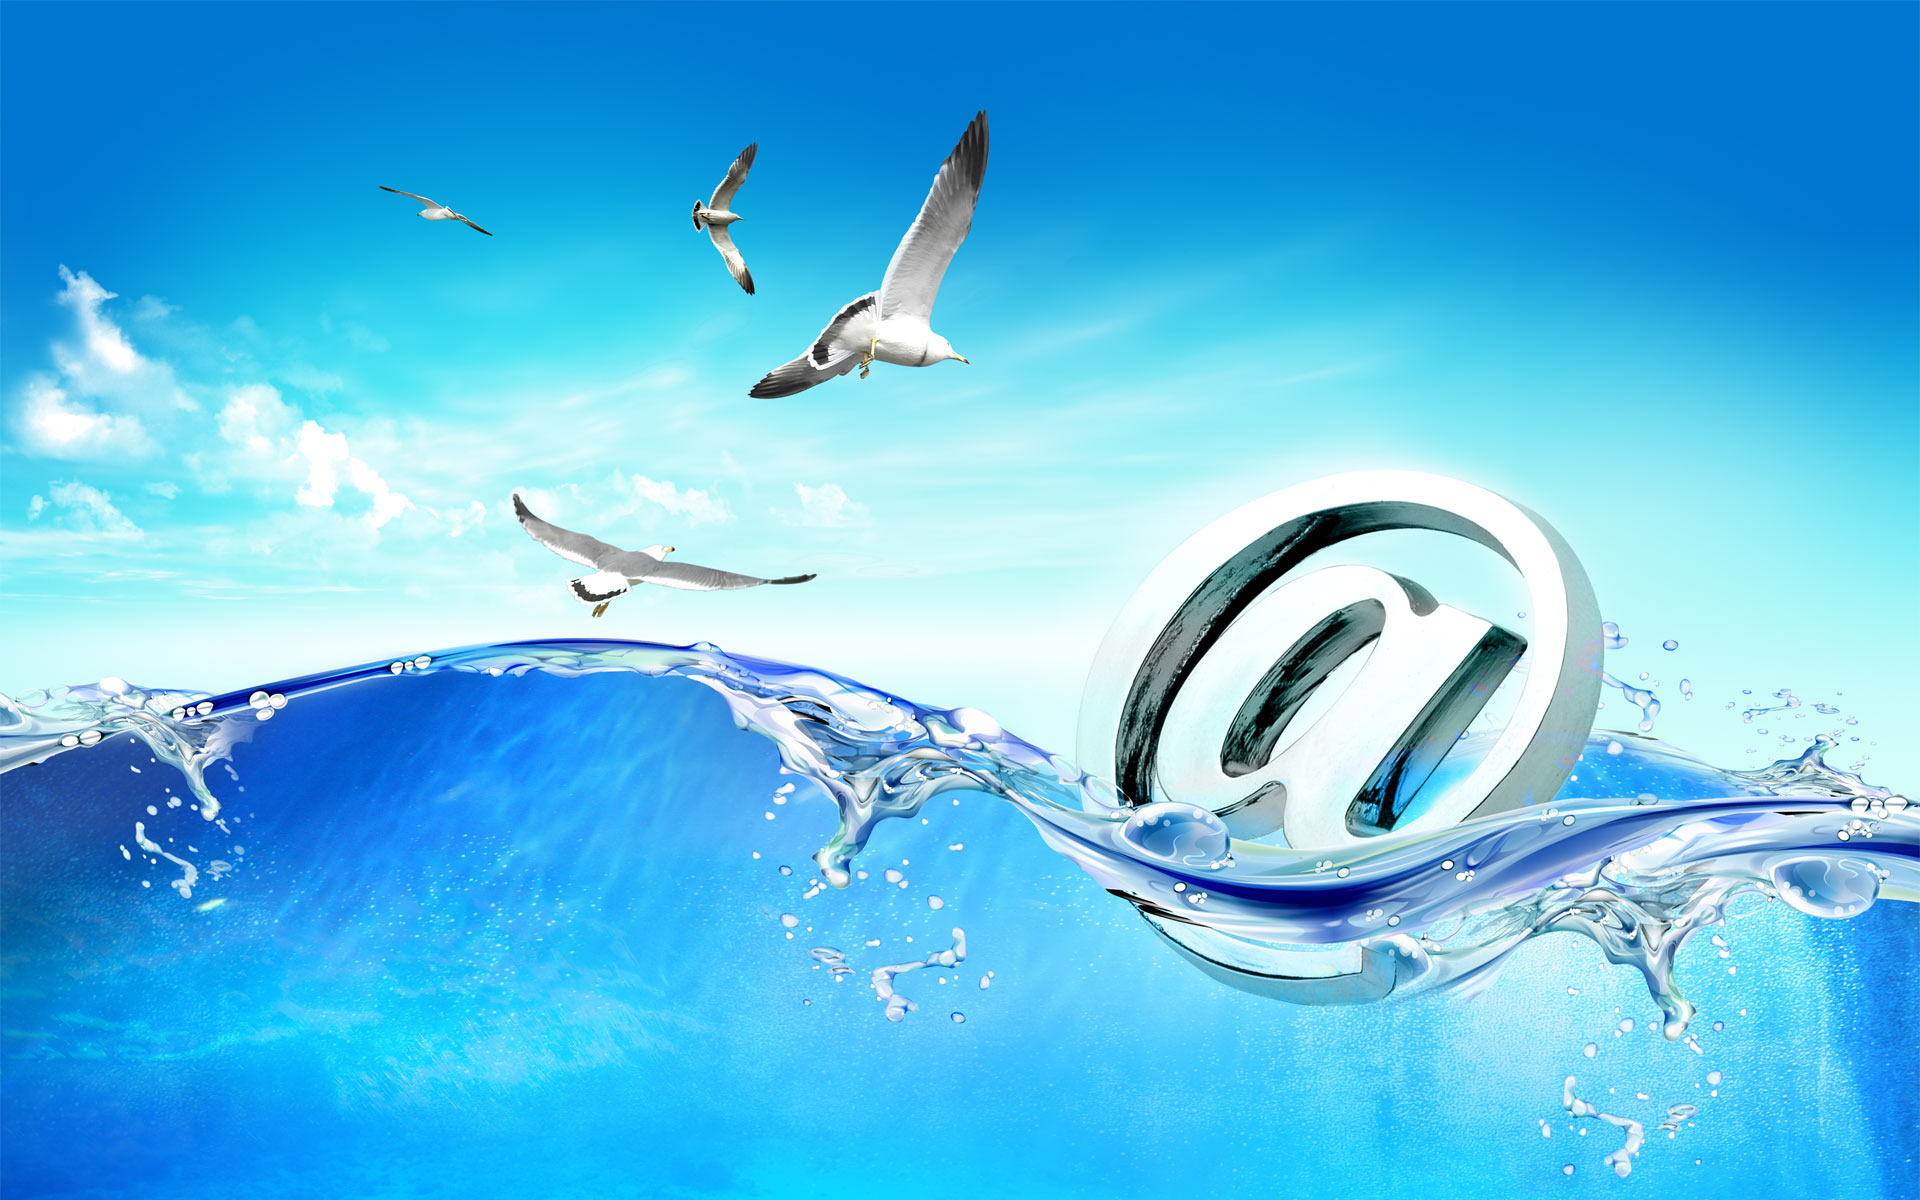 Gmail Wallpaper Background Download